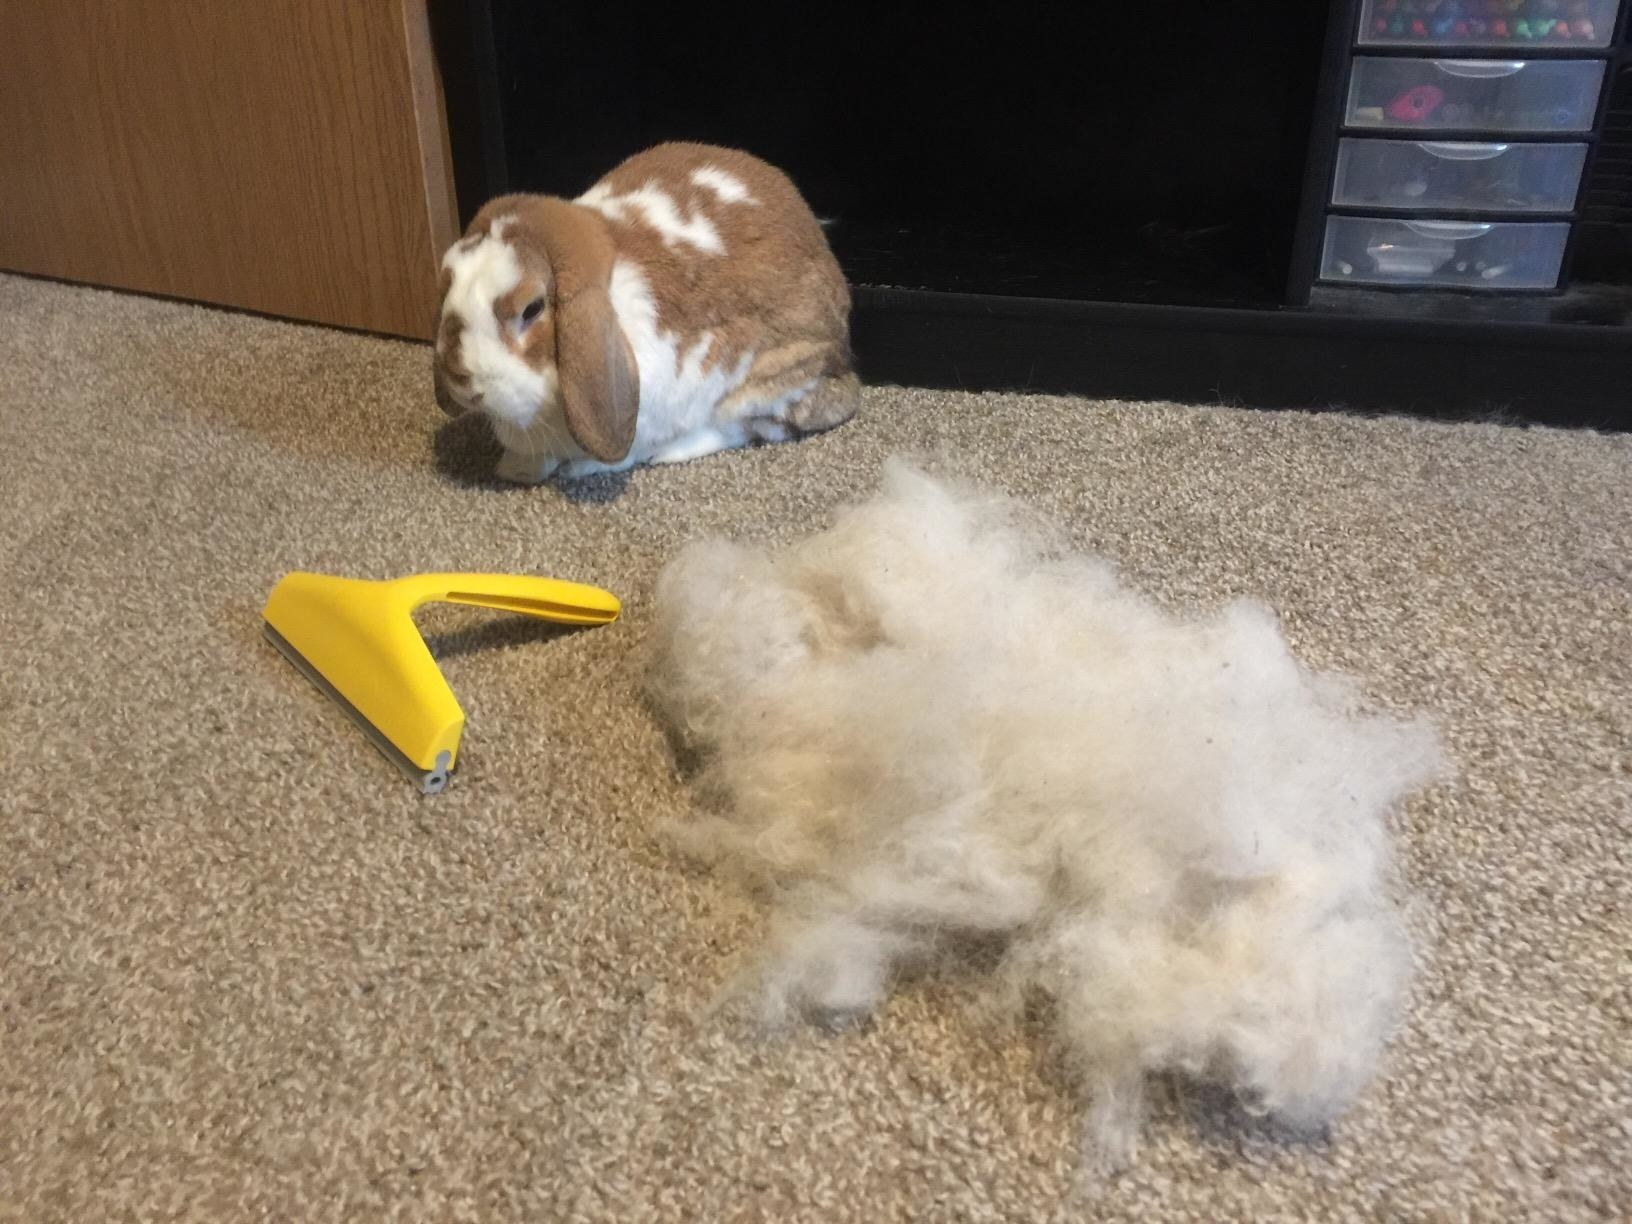 A bunny, the small yellow squeegee, and a pile of hair twice as big as the bunny, all sitting on a reviewer's carpet